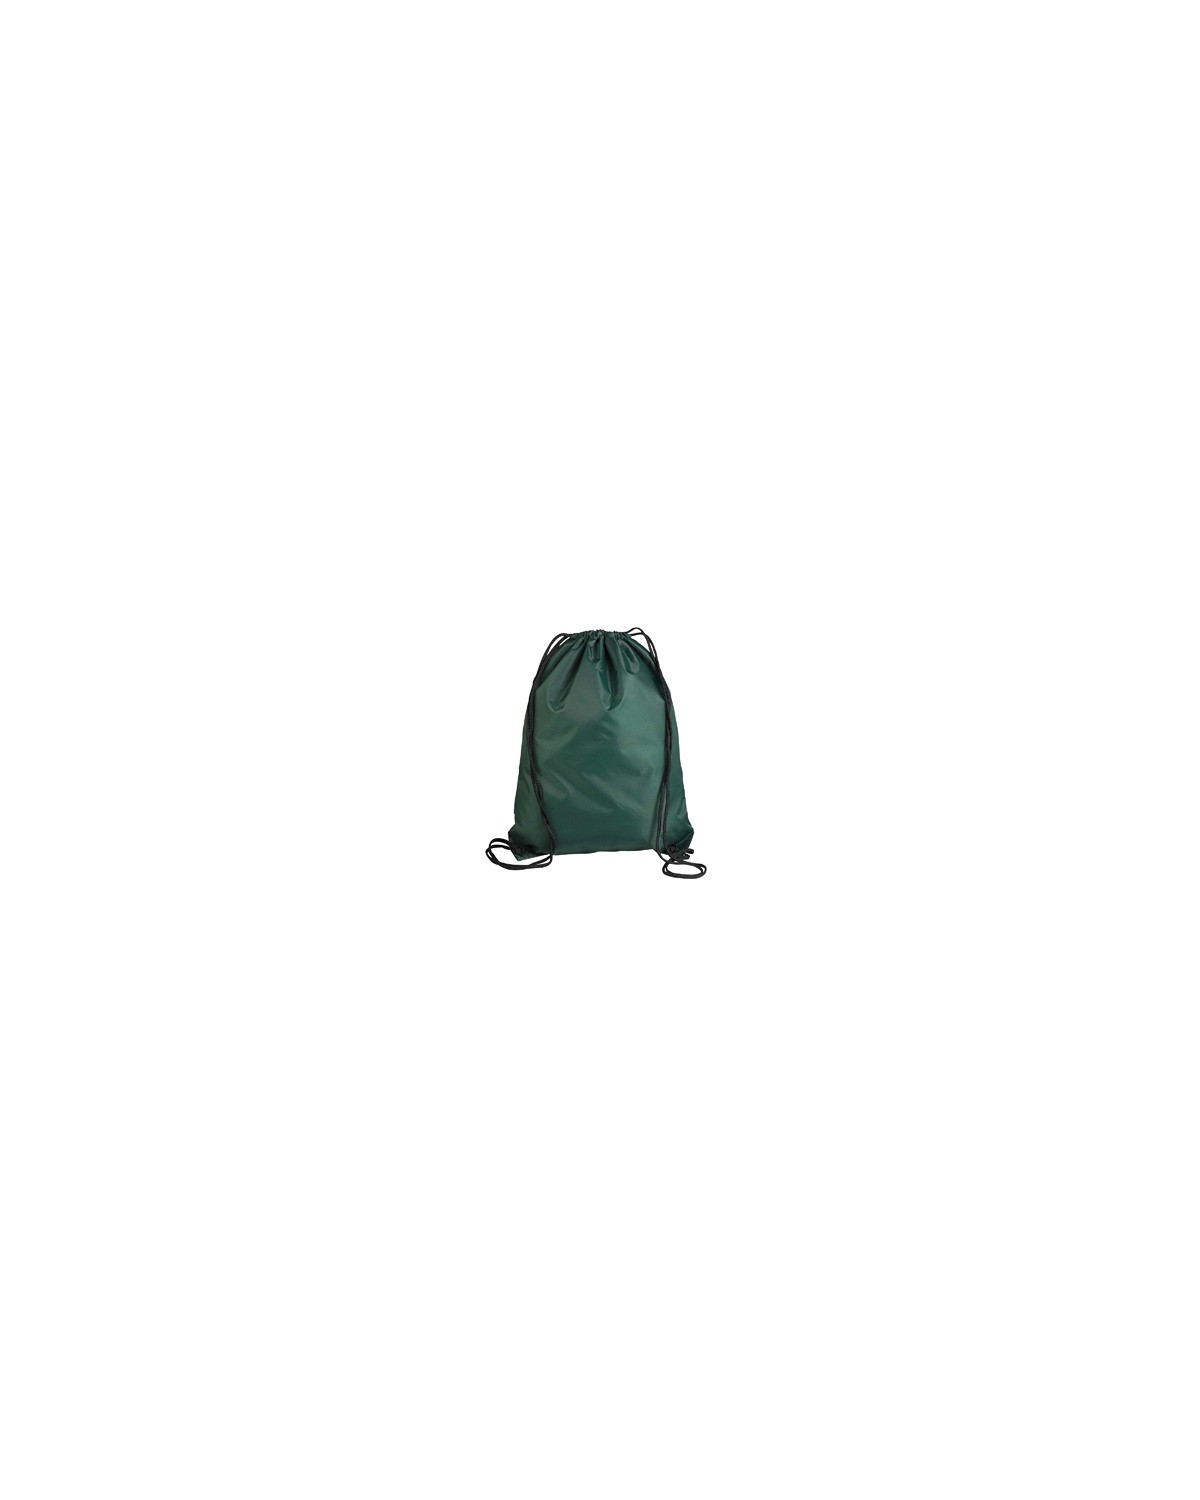 8886 Liberty Bags FOREST